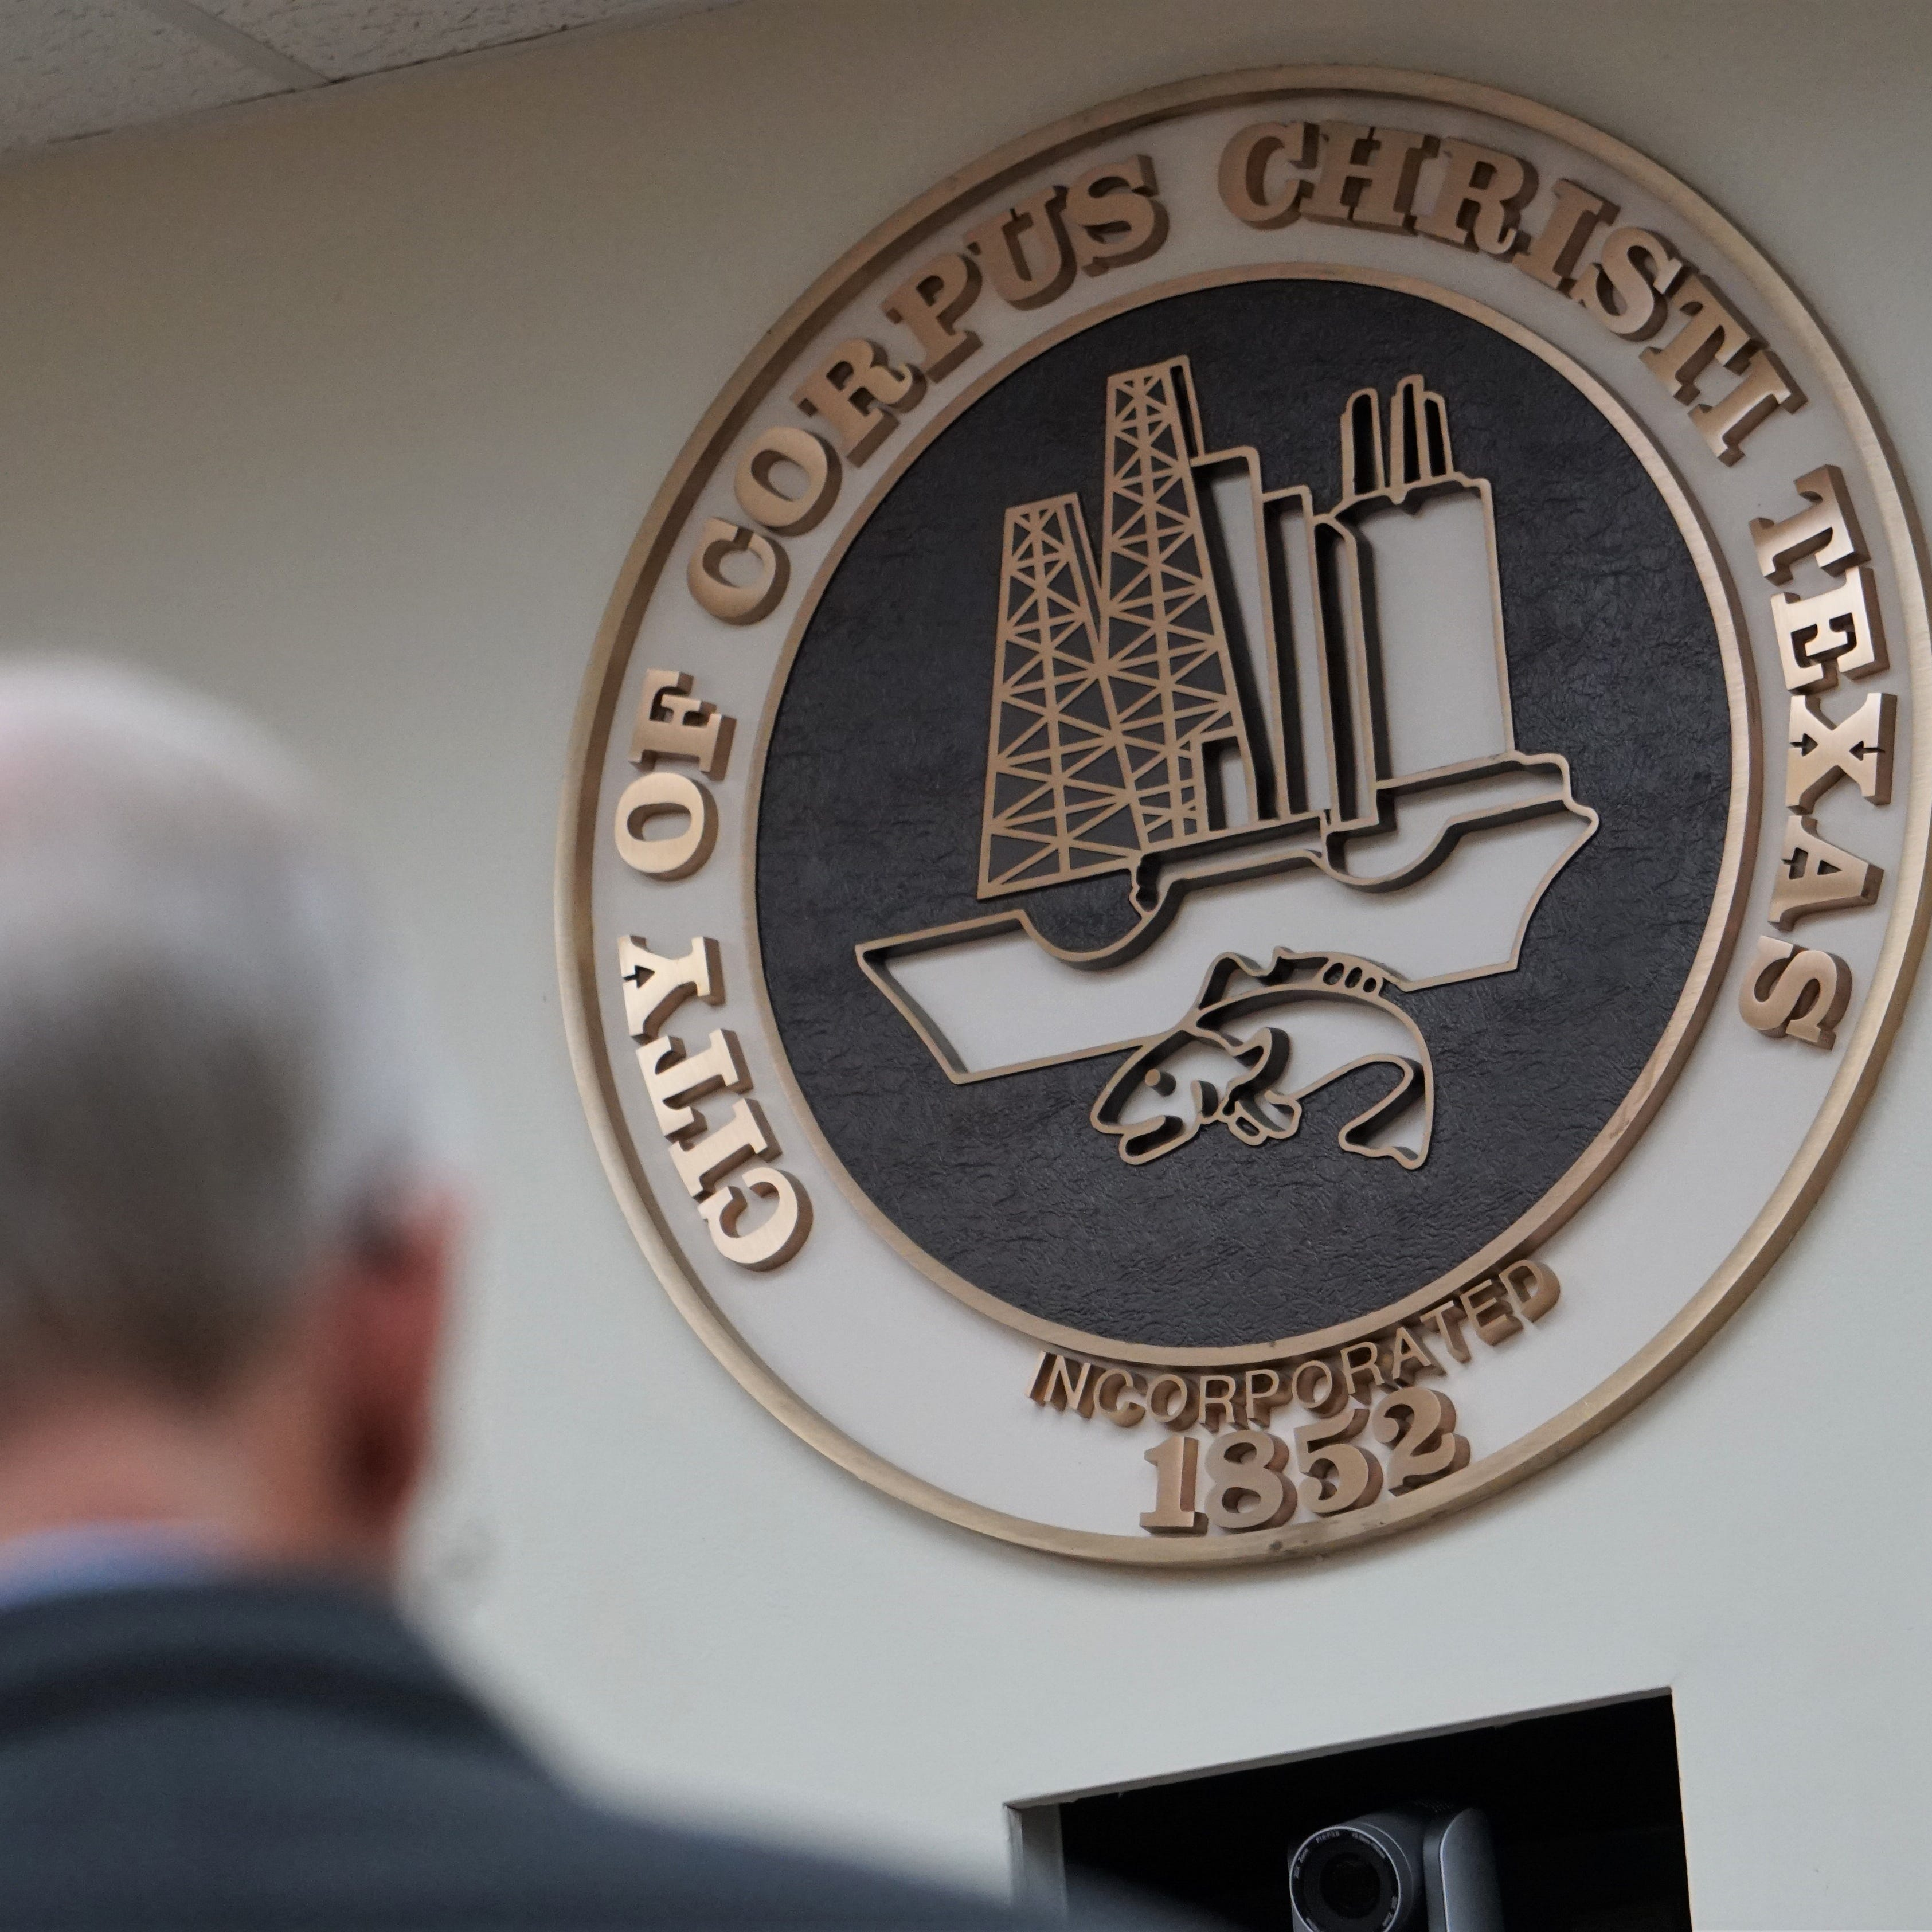 Corpus Christi's final 4: Here are the finalists for the city manager position